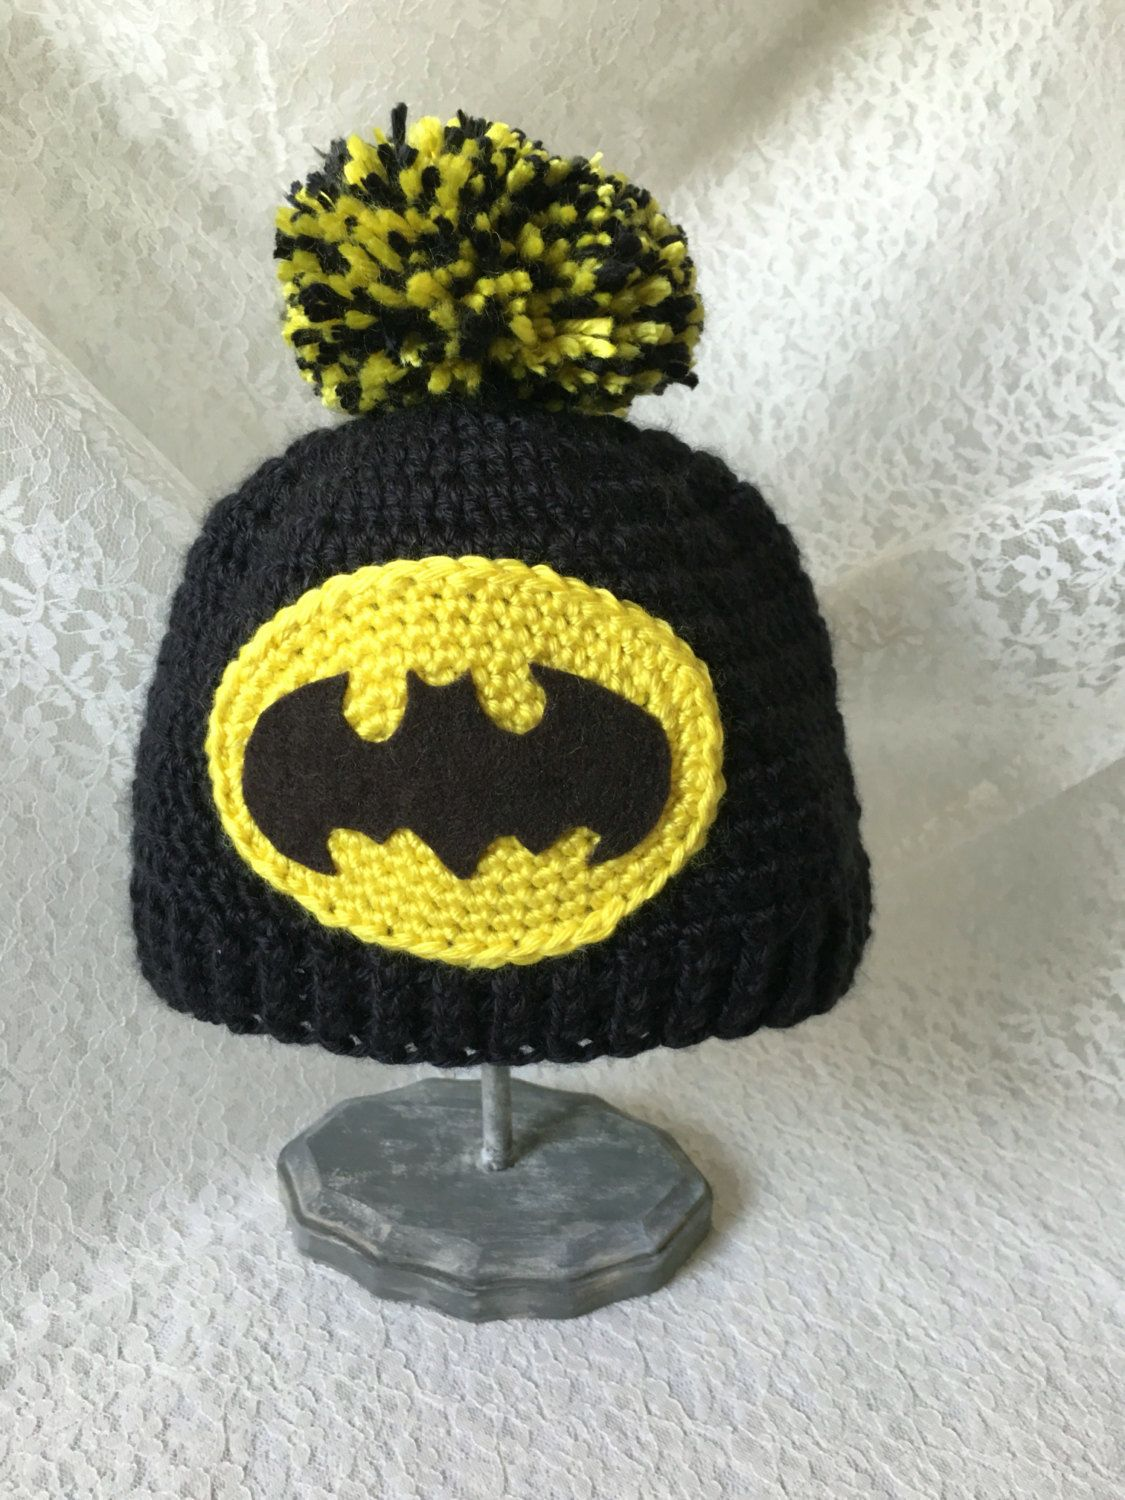 How To Crochet The Batman Symbol Crochet Pinterest Crochet